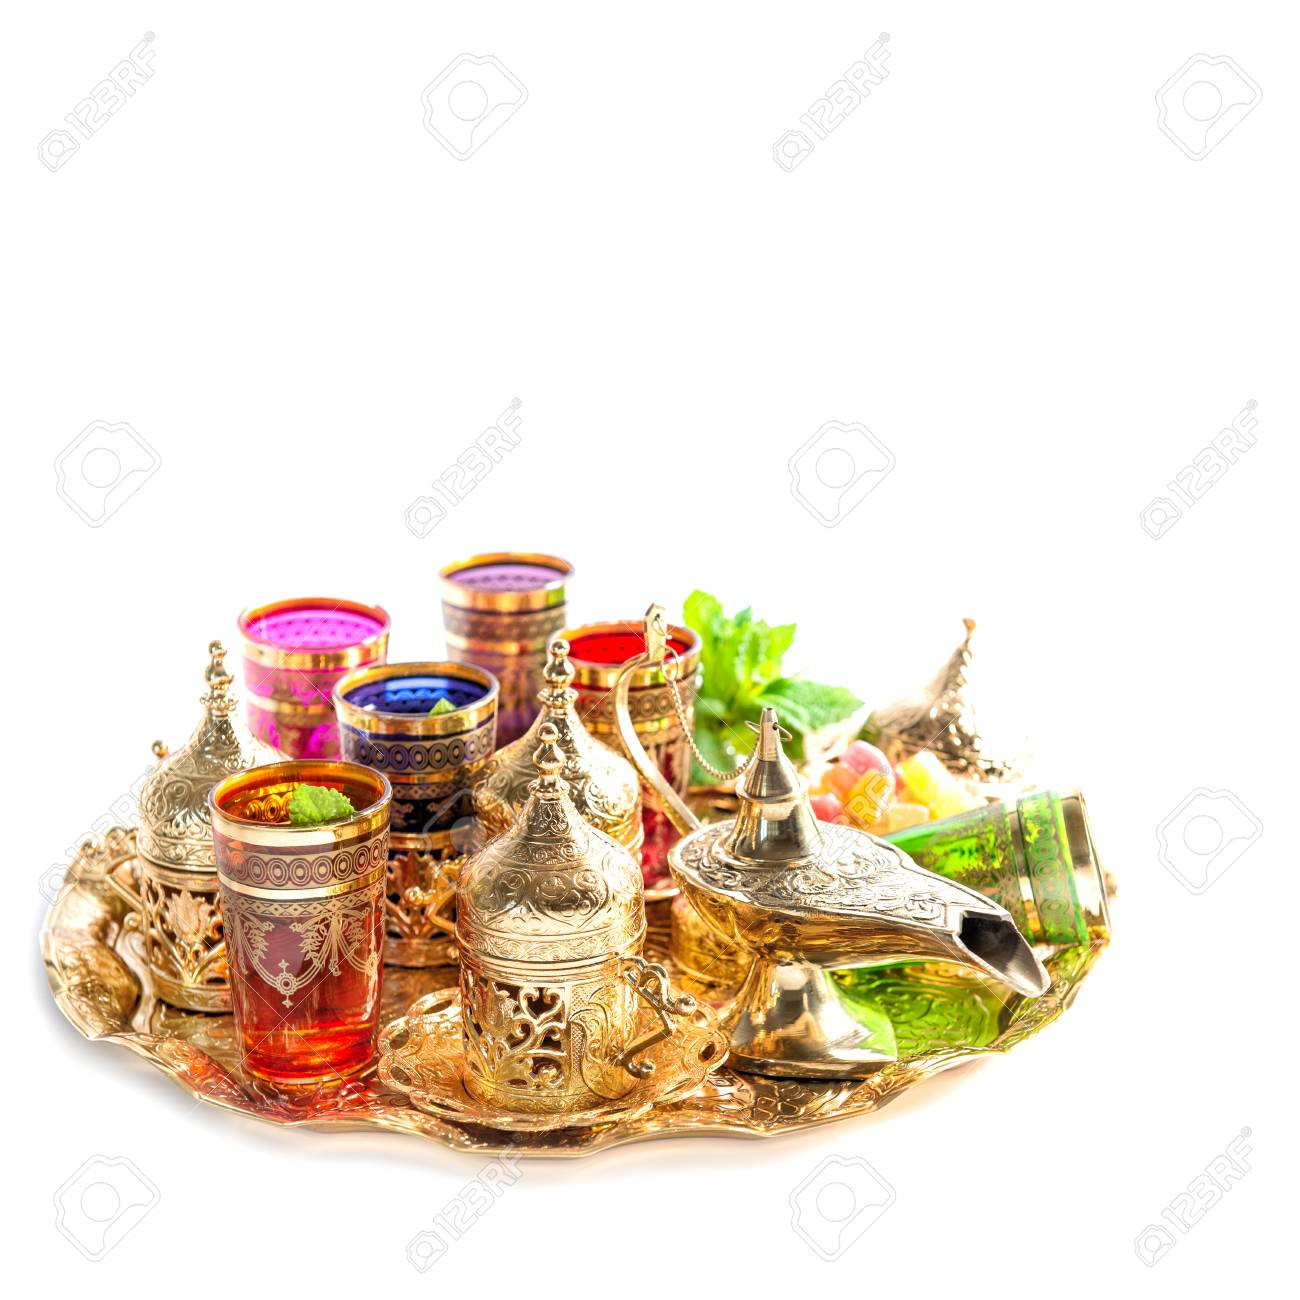 Tea glasses and mint leaves  Golden holidays decoration  Ramadan